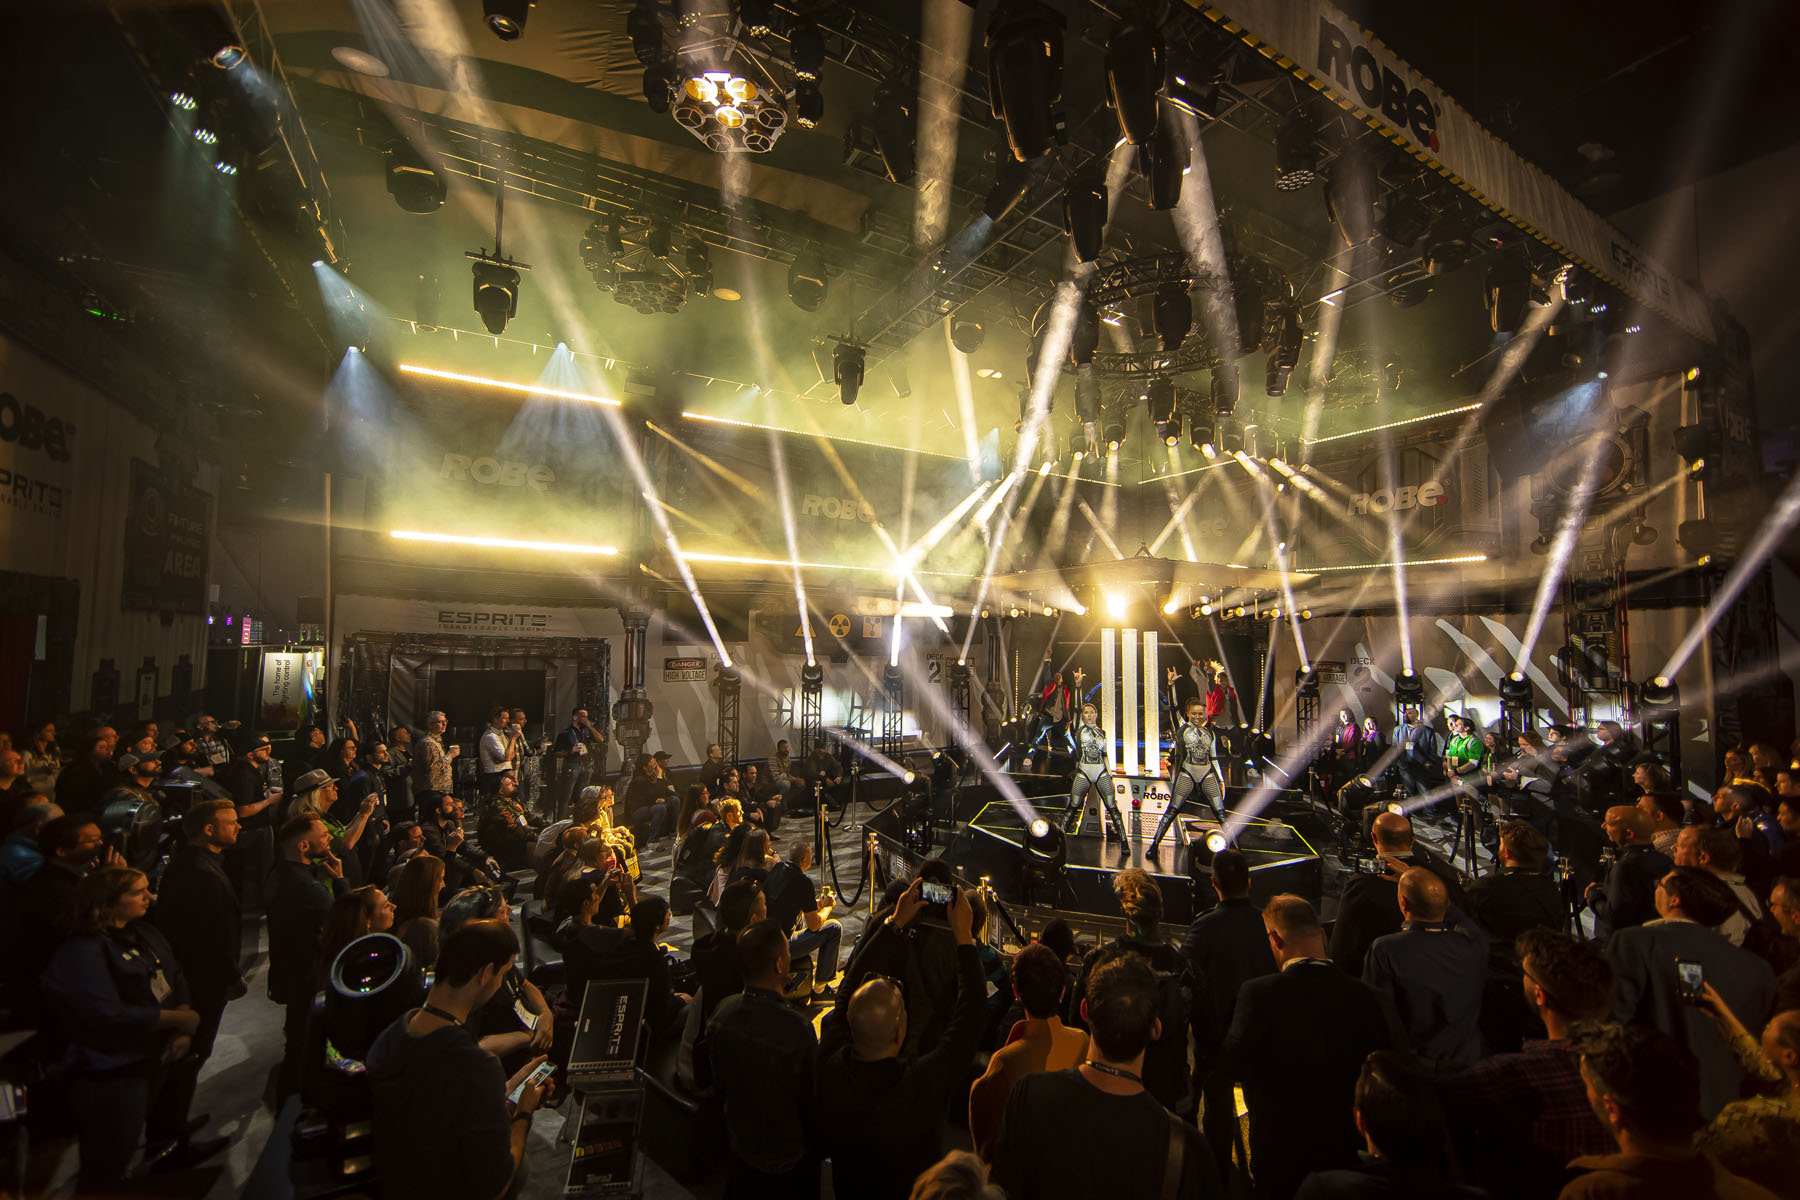 Robe LDI 2019 post show ldi222022116.jpg